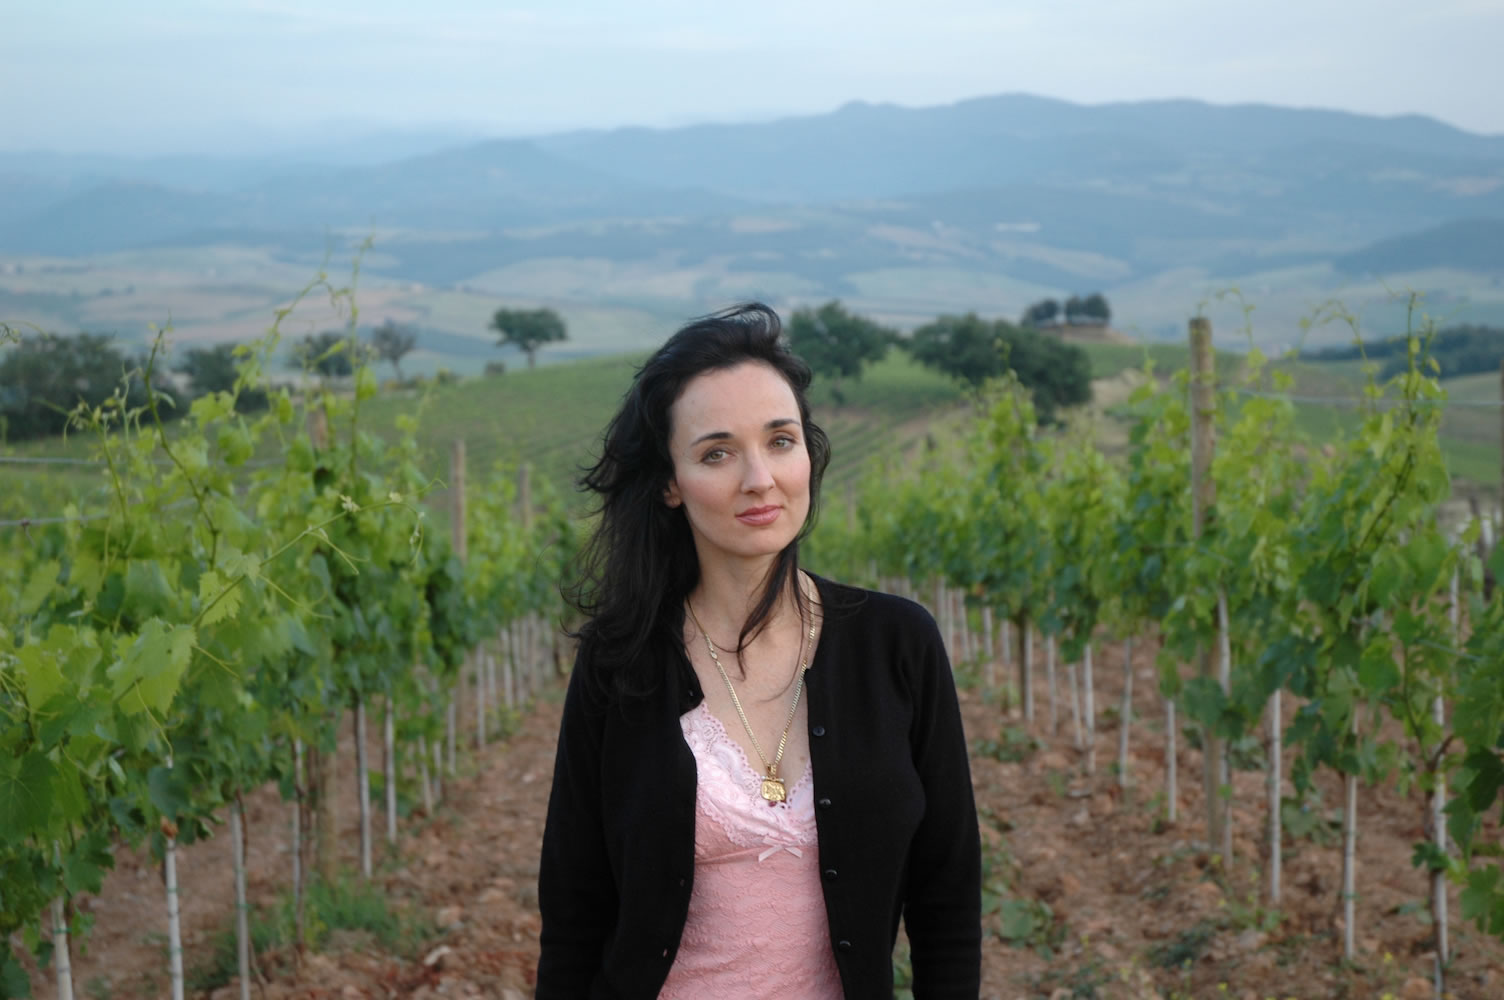 Kerin_OKeefe The wine writer - Exploring Taste Magazine